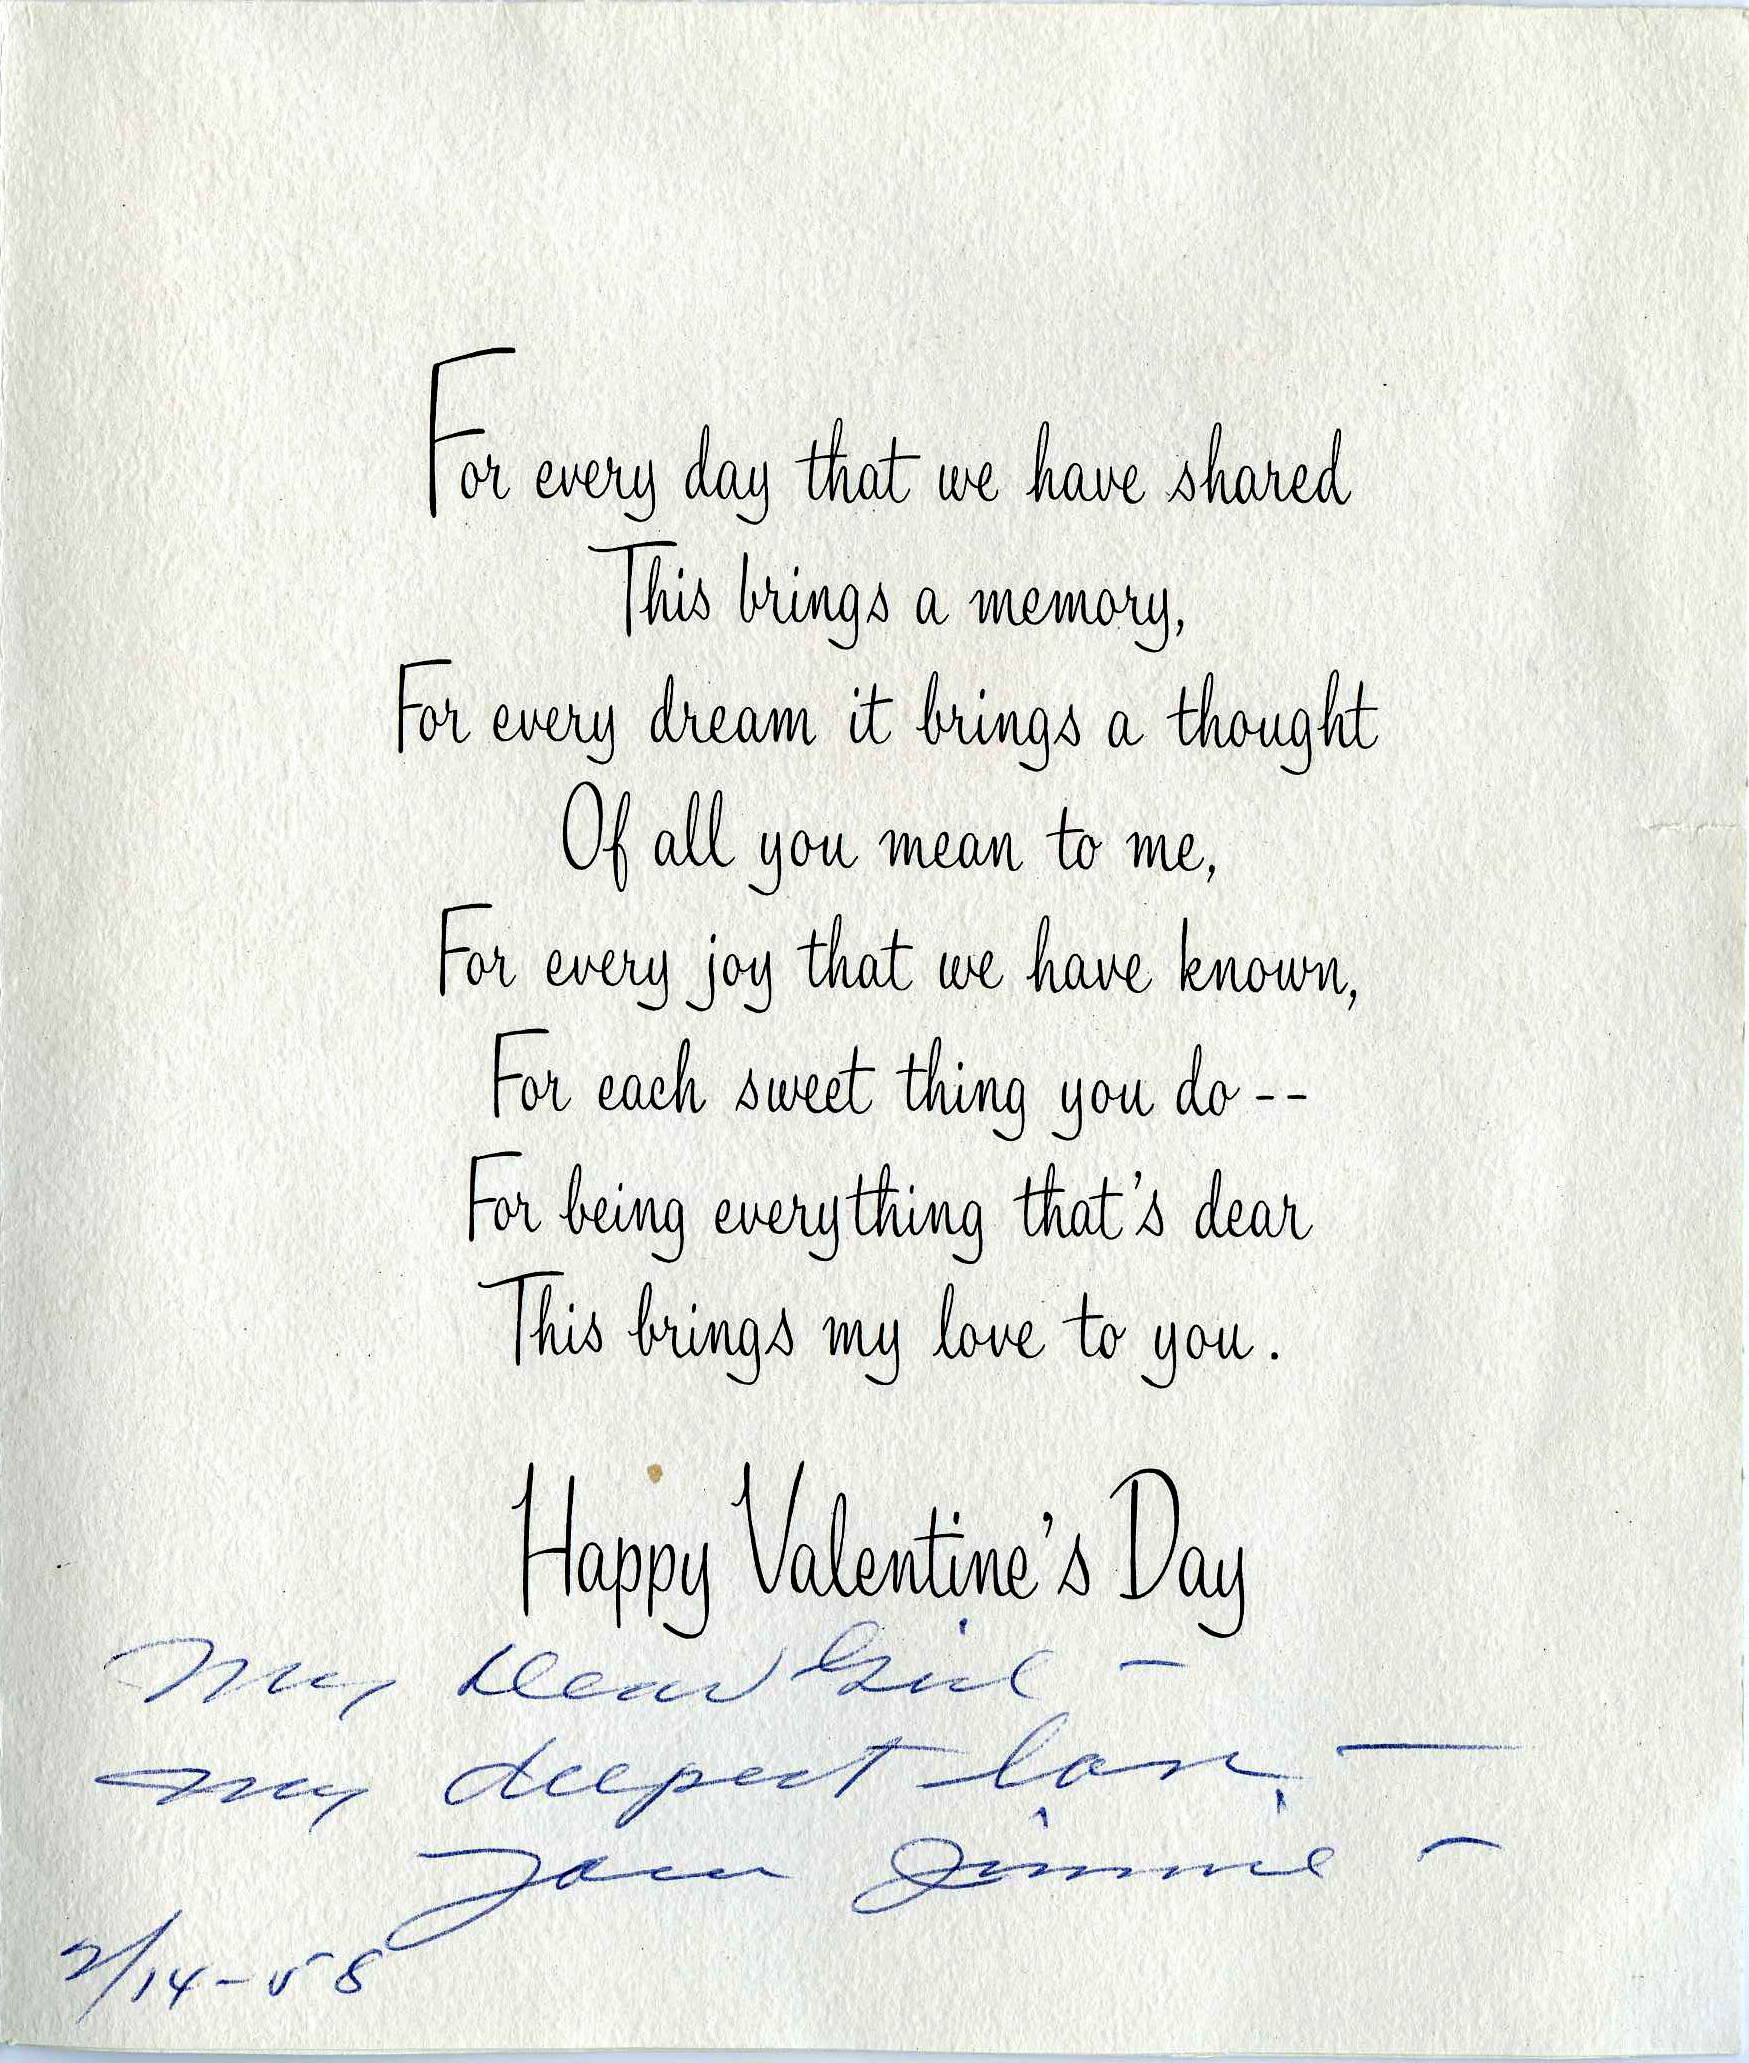 To My Valentine: From Mr. J.C. Penney - SMU